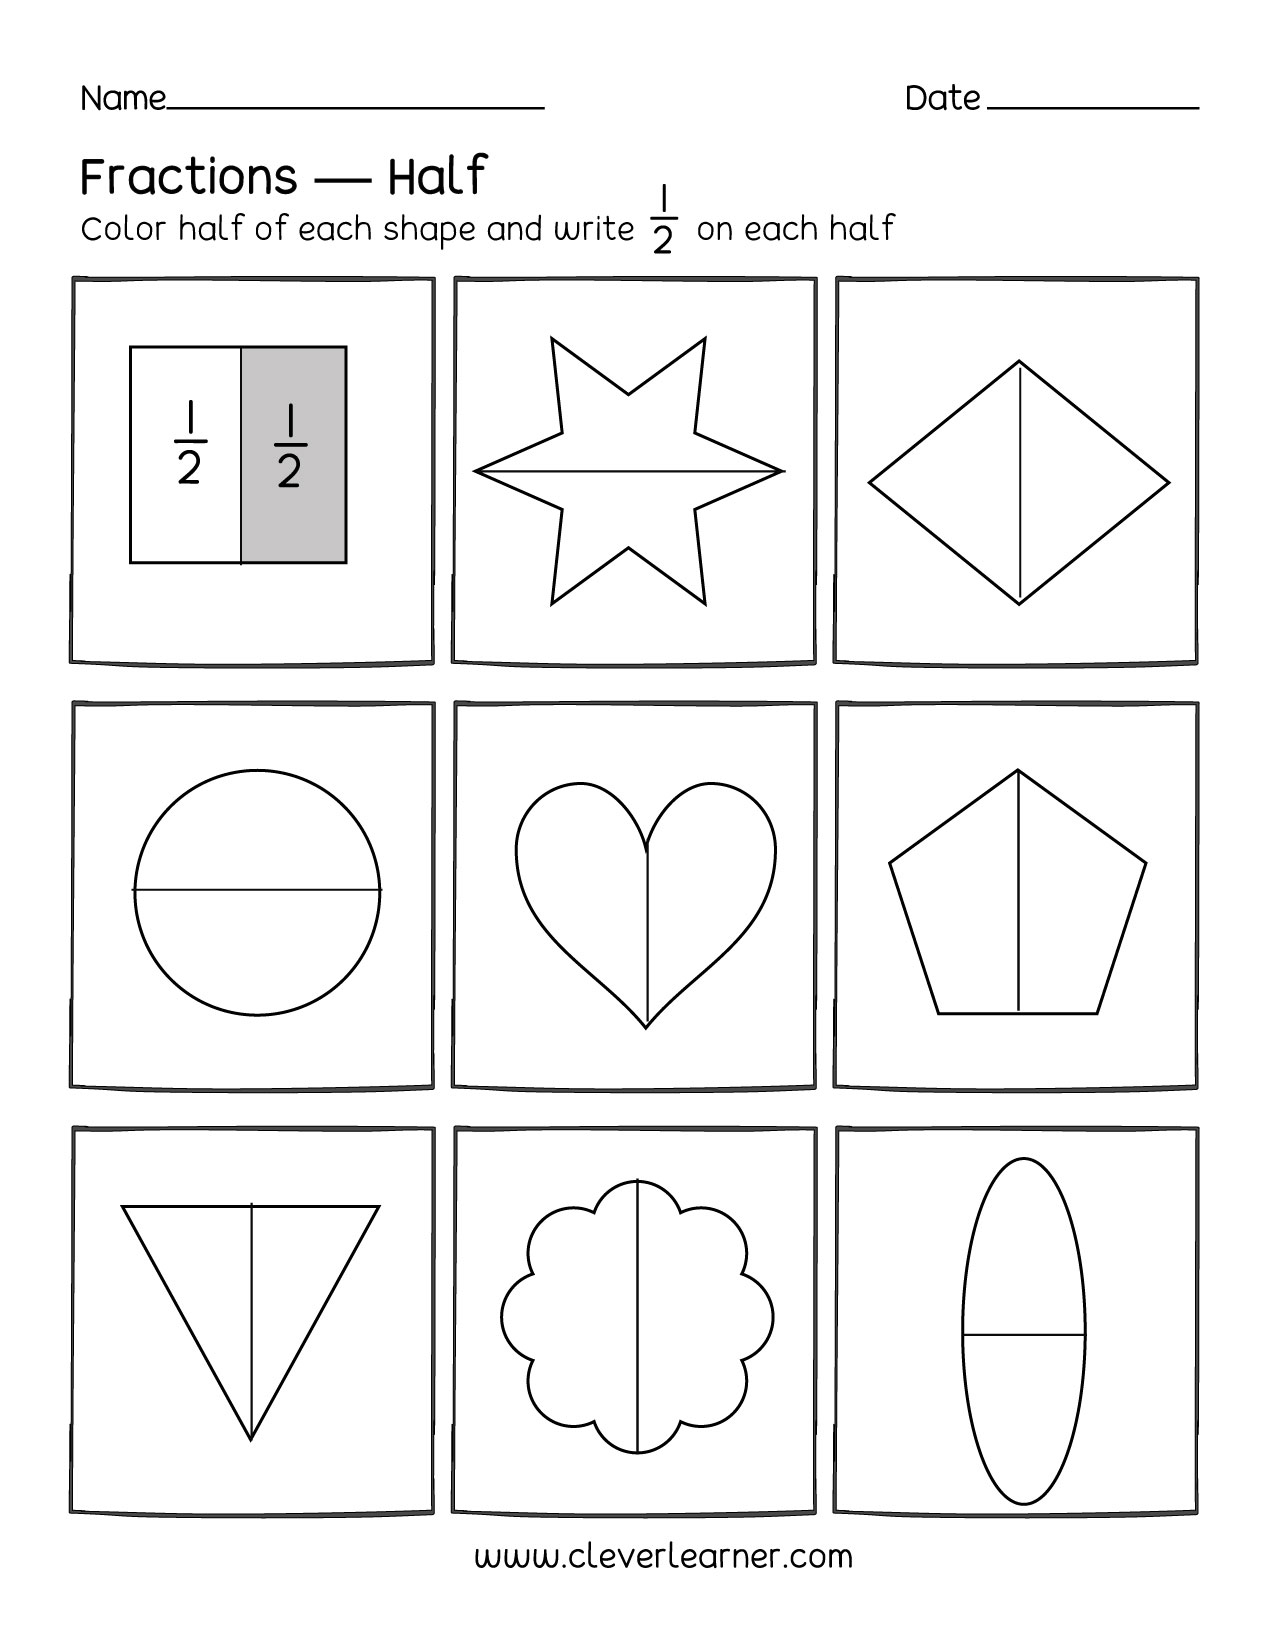 Dividing Fractions Coloring Worksheet